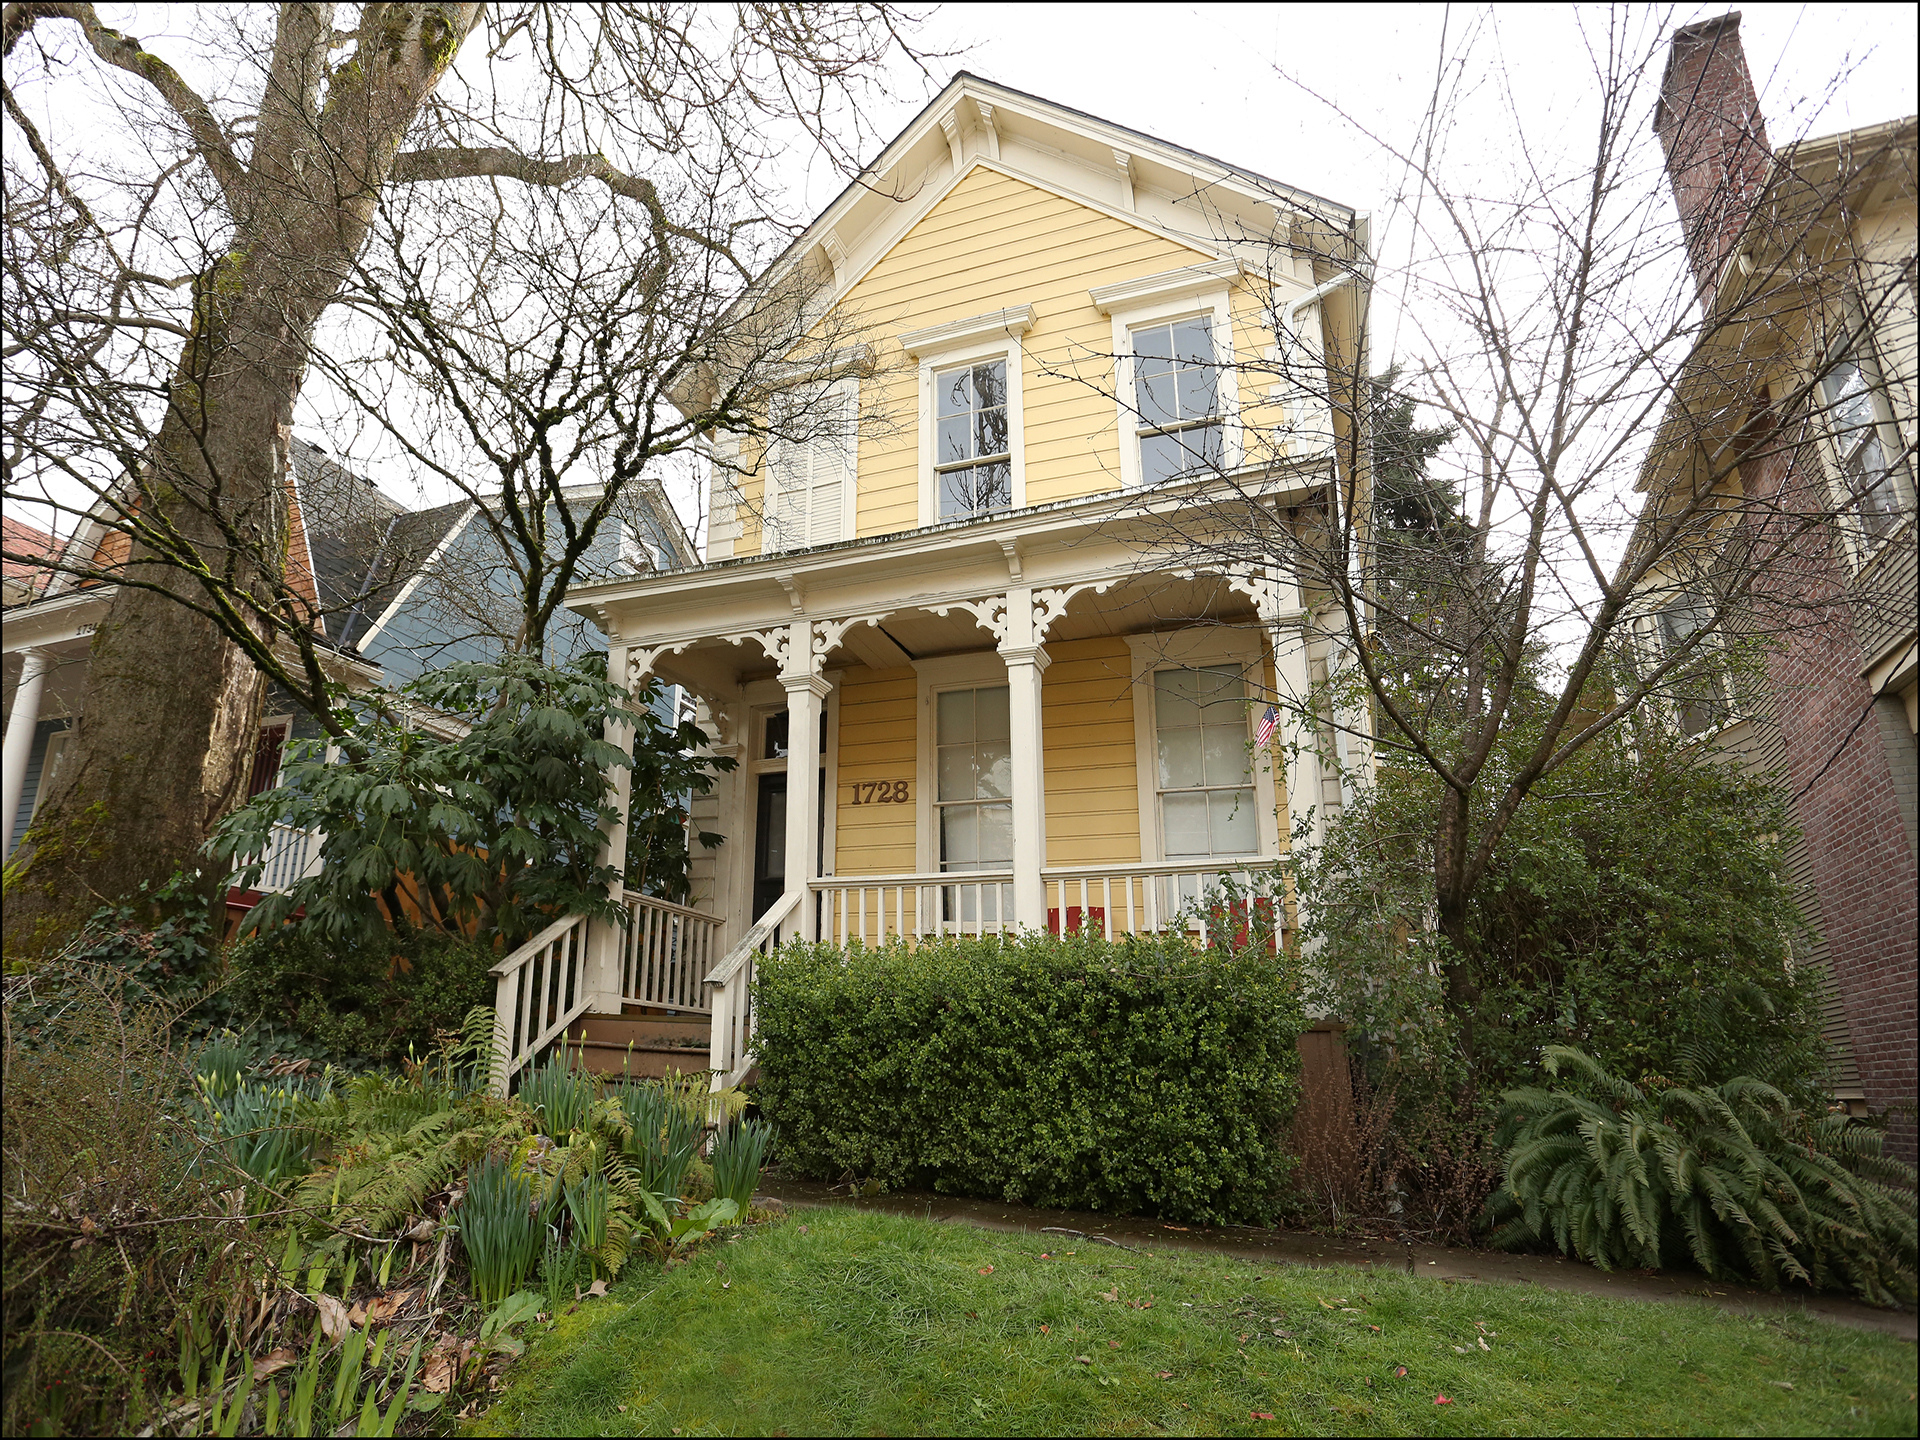 1728 SE Belmont St.  - Wonderful Queen Anne Victorian triplex with huge lot! -  $750,000- SOLD!